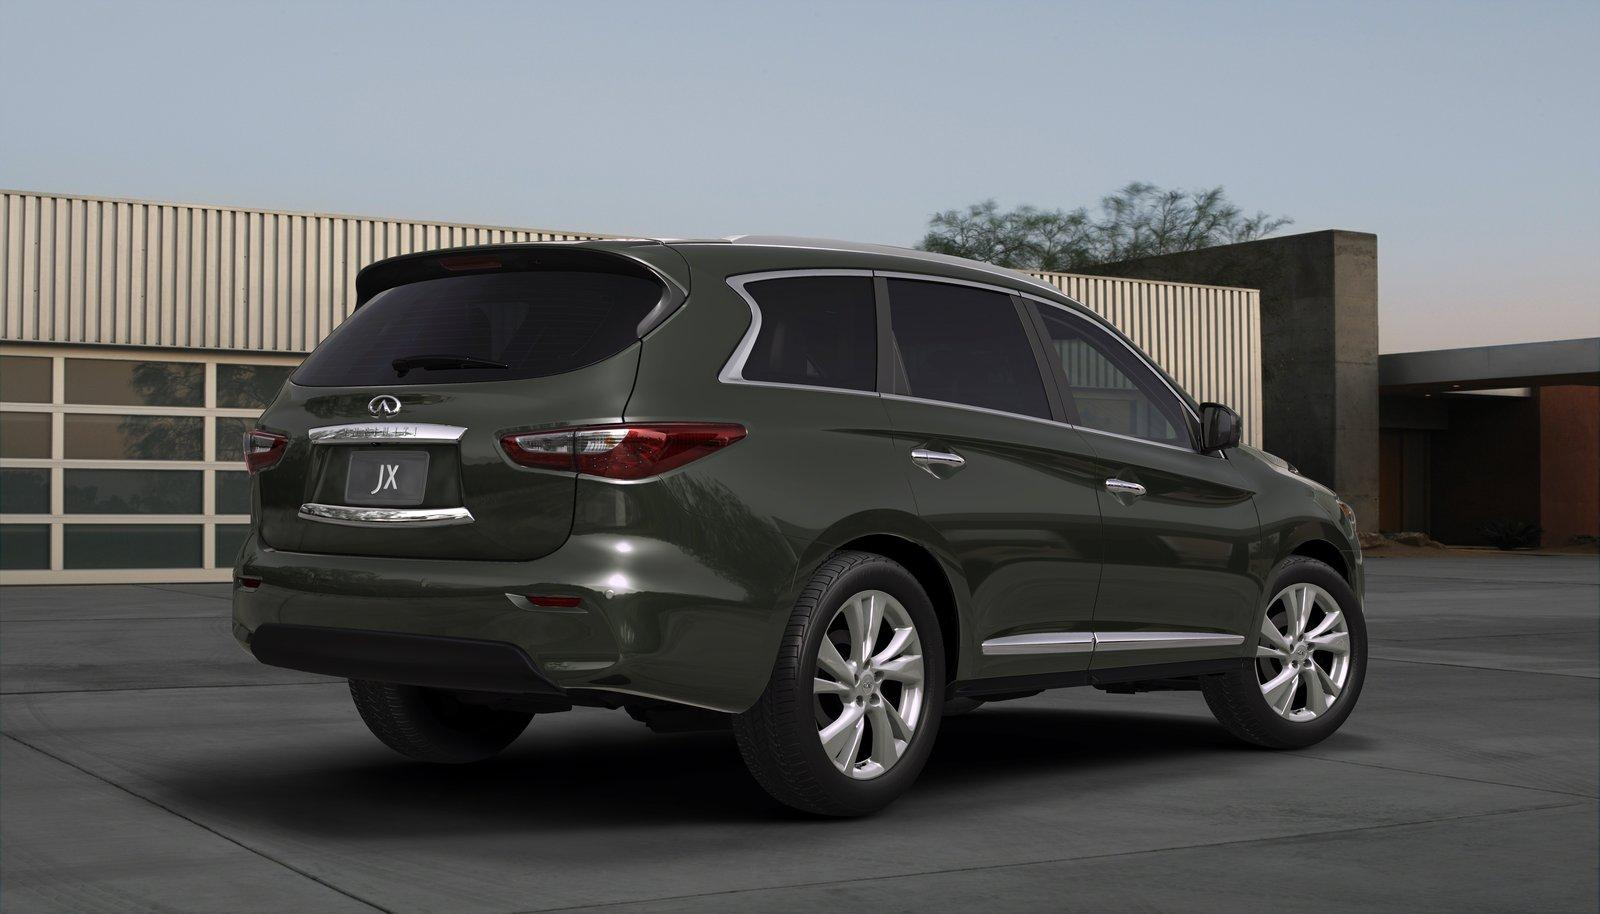 2013 Infiniti JX 2 US pricing announced for the 2013 Infiniti JX